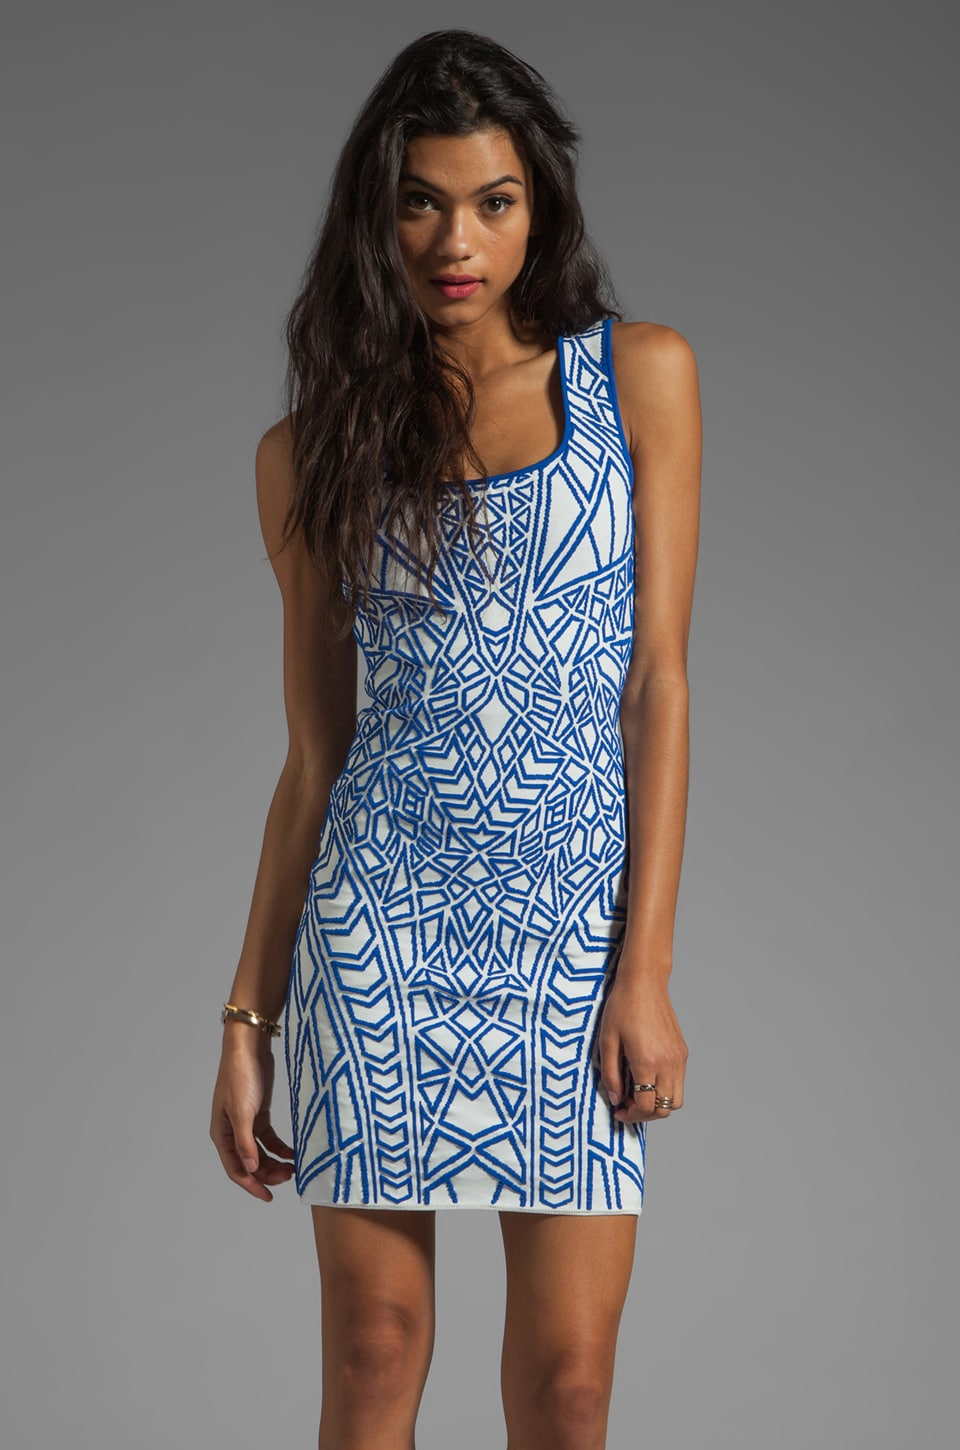 RVN Geo Signature Dress in Blue/White